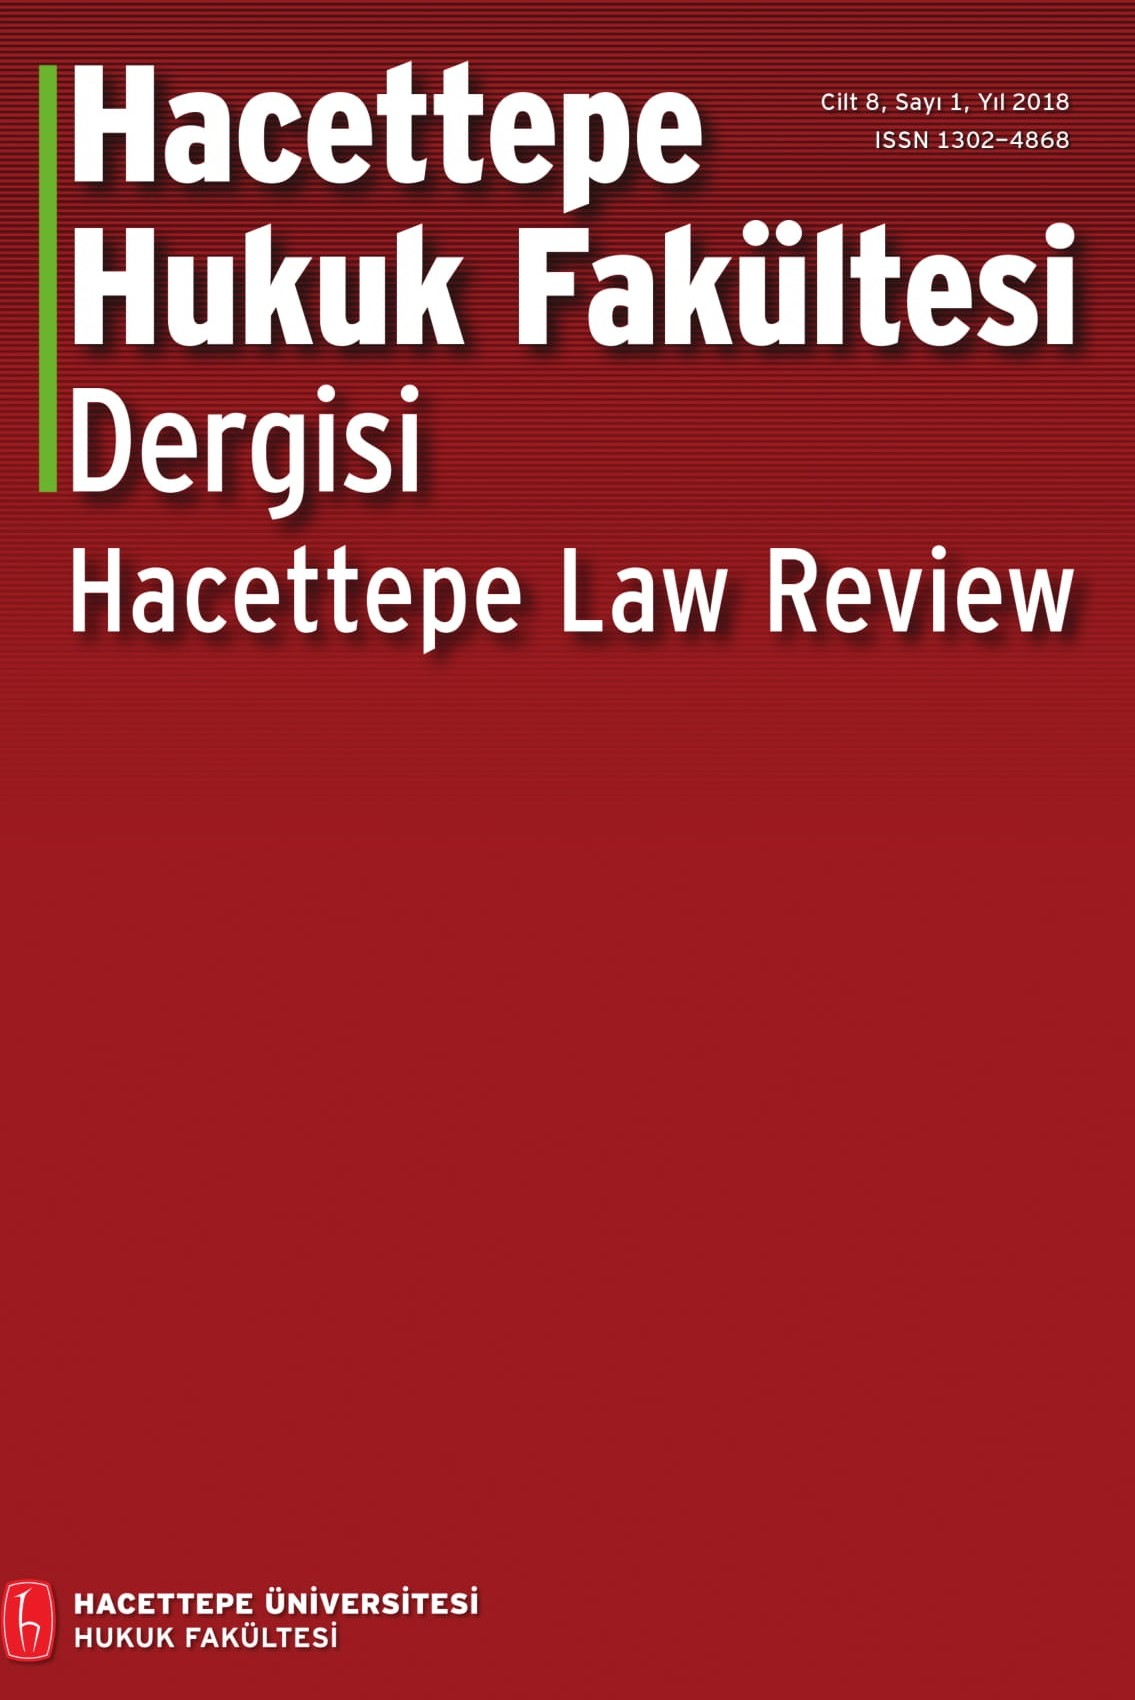 Hacettepe Law Review